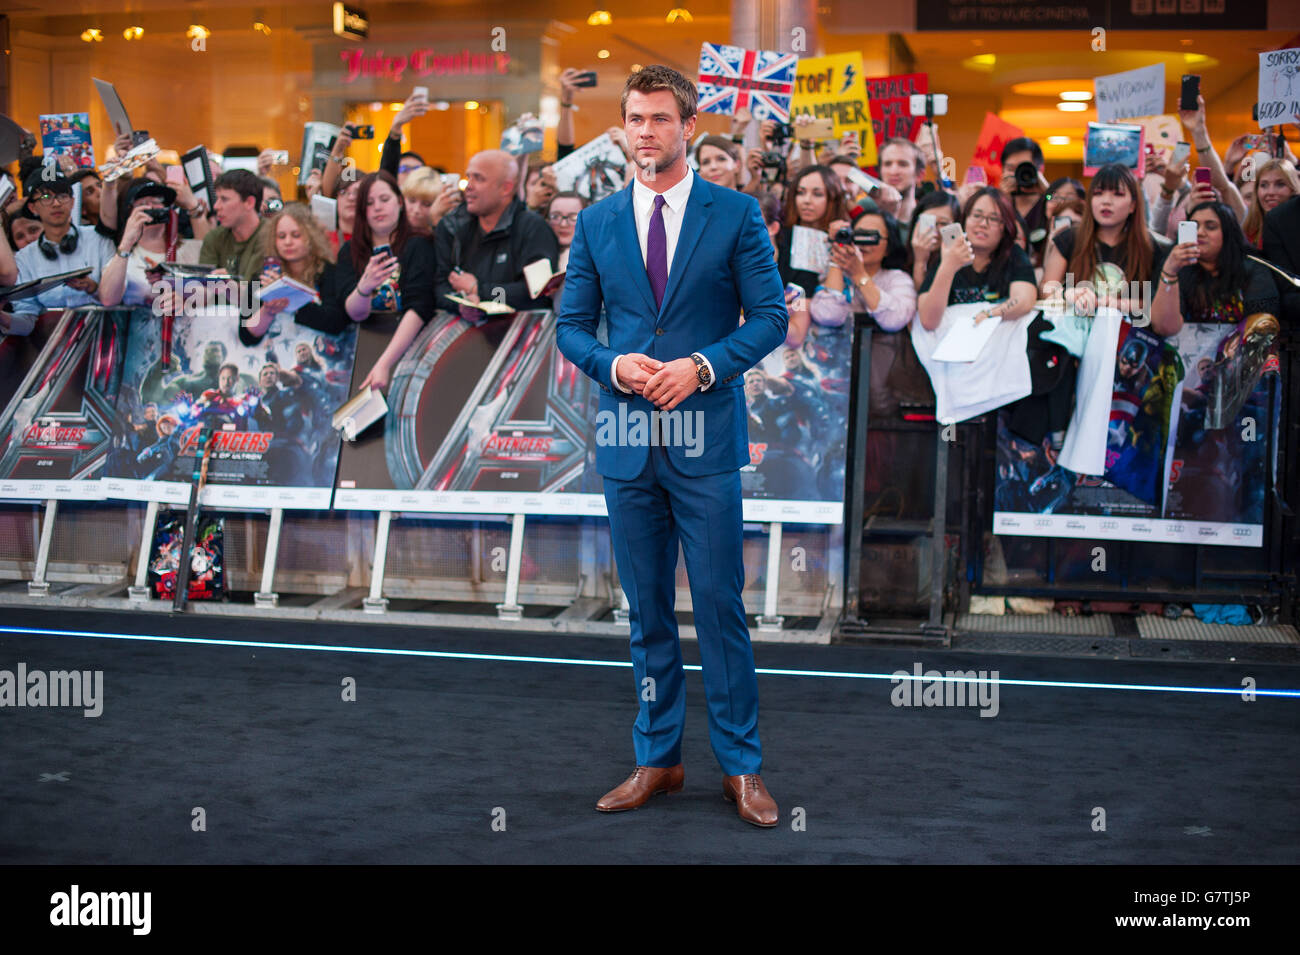 Marvel Avengers: The Age Of Ultron UK Film Premiere - London - Stock Image